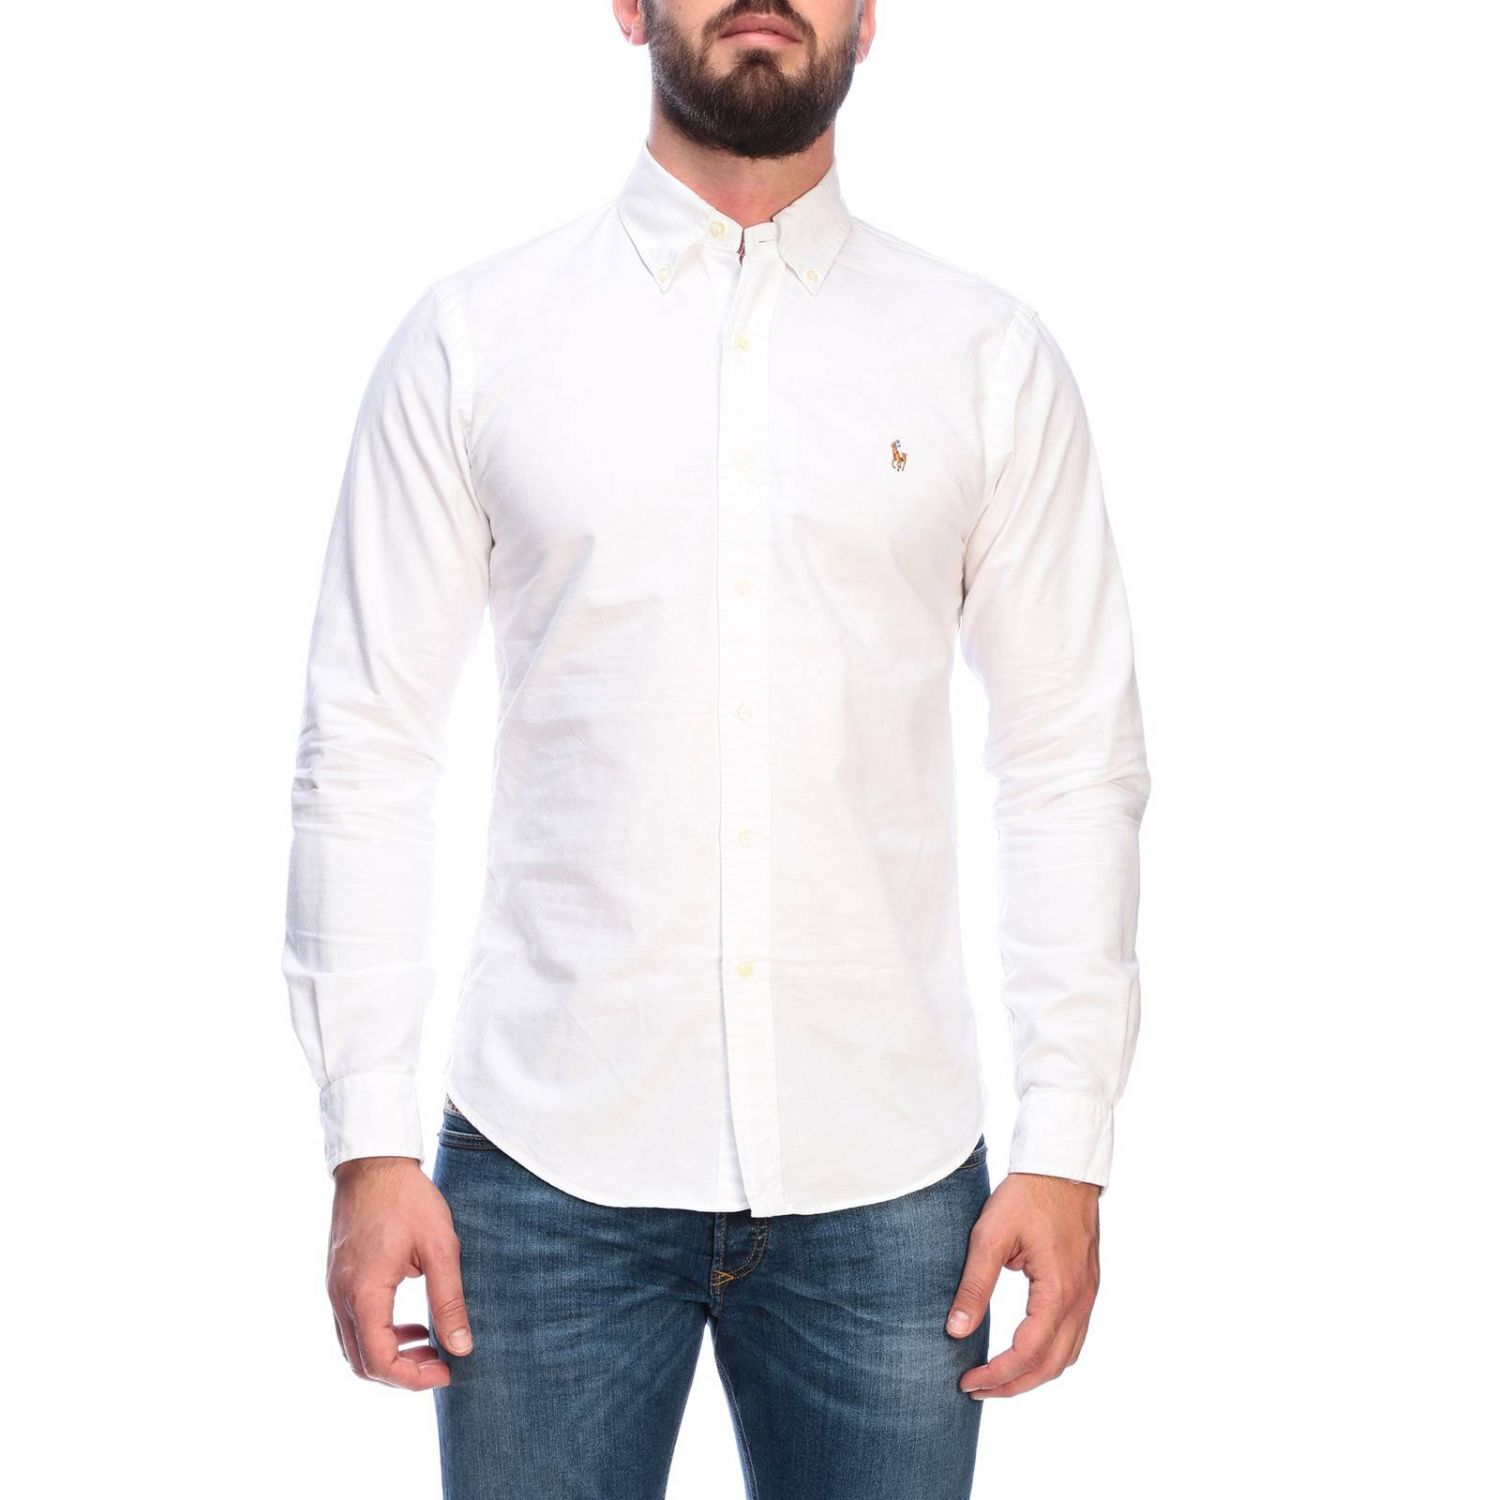 Chemise Oxford slim fit avec col button down et logo Polo Ralph Lauren blanc 1